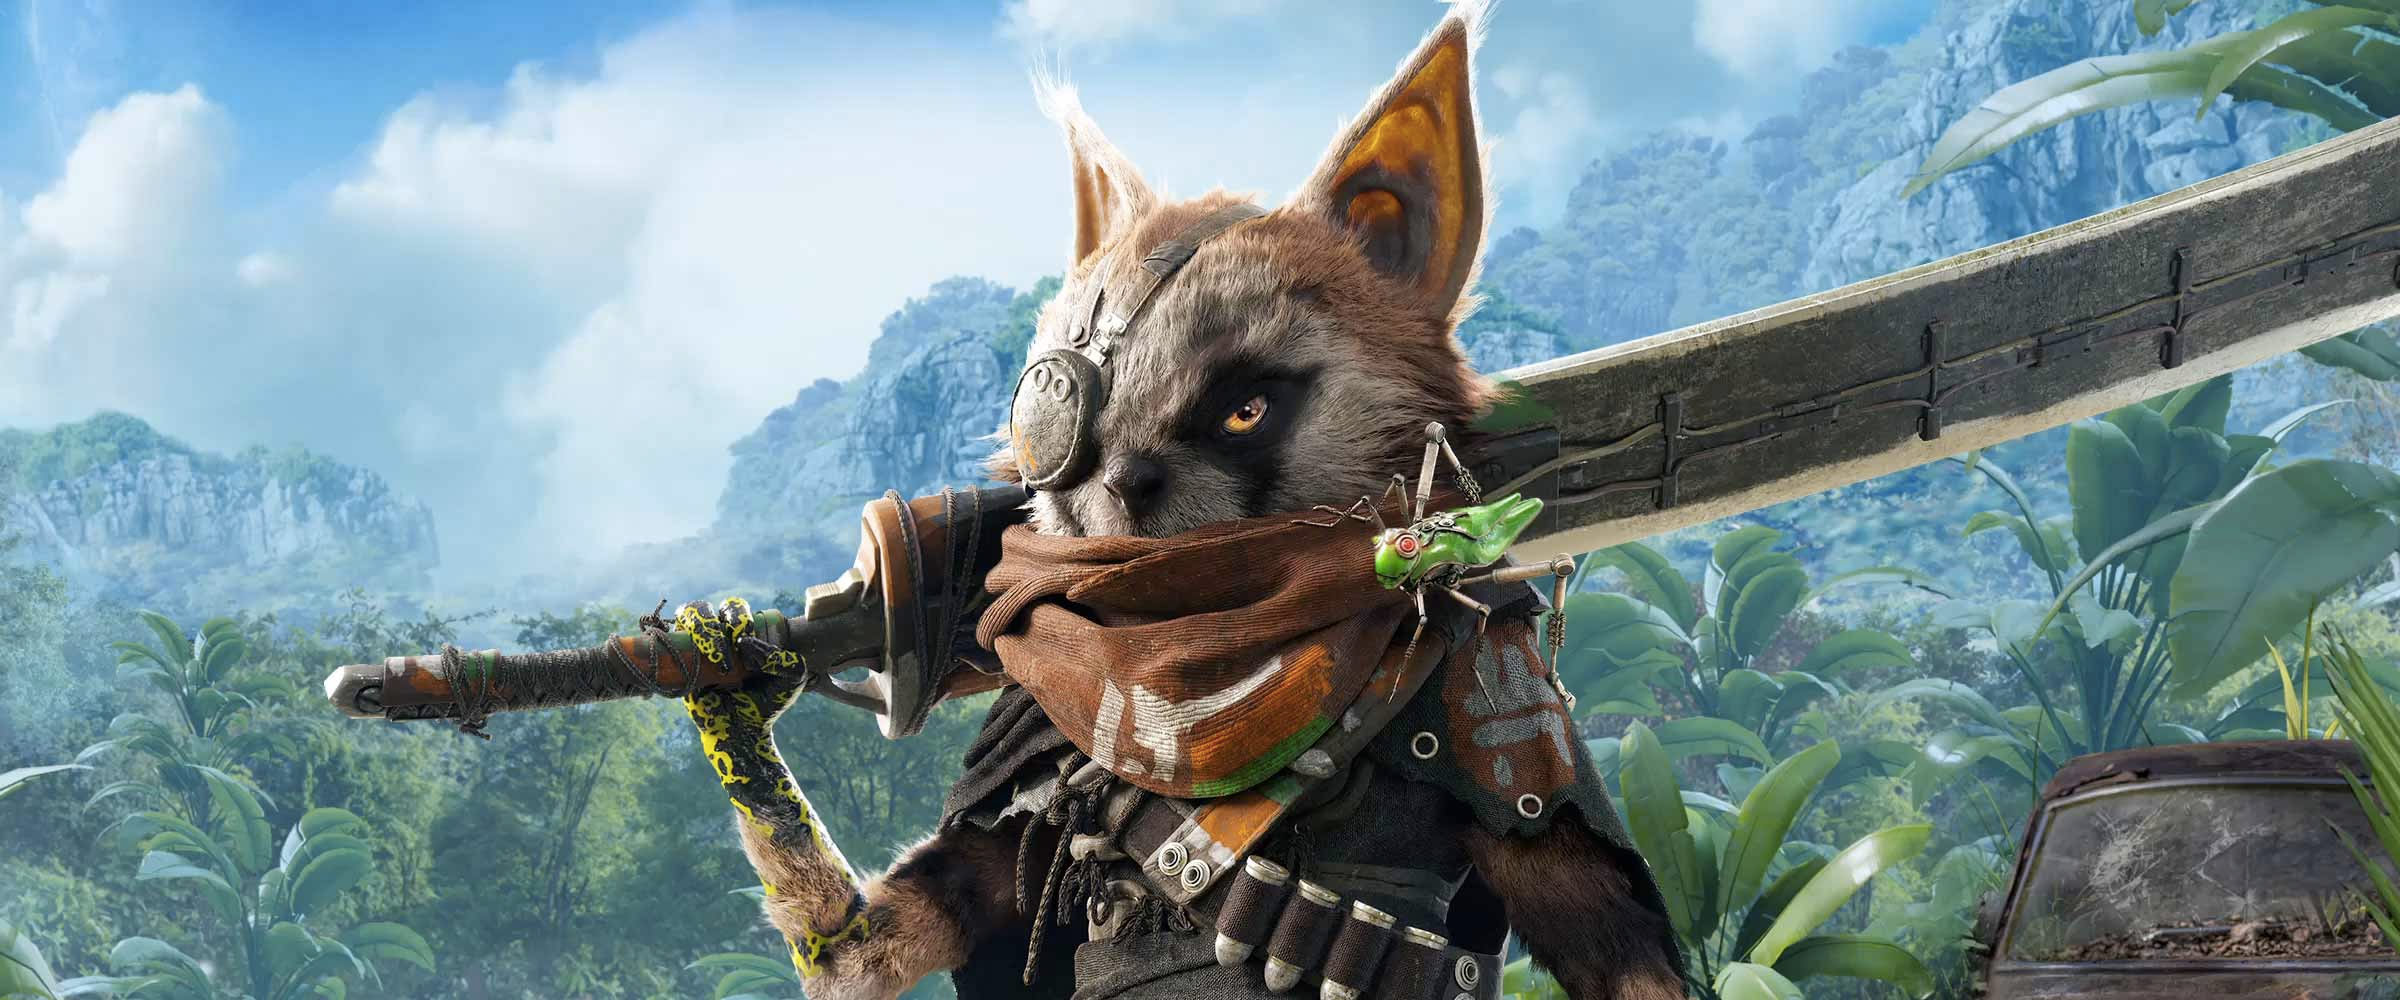 Artwork of the main character of BioMutant and his grasshopper-like sidekick